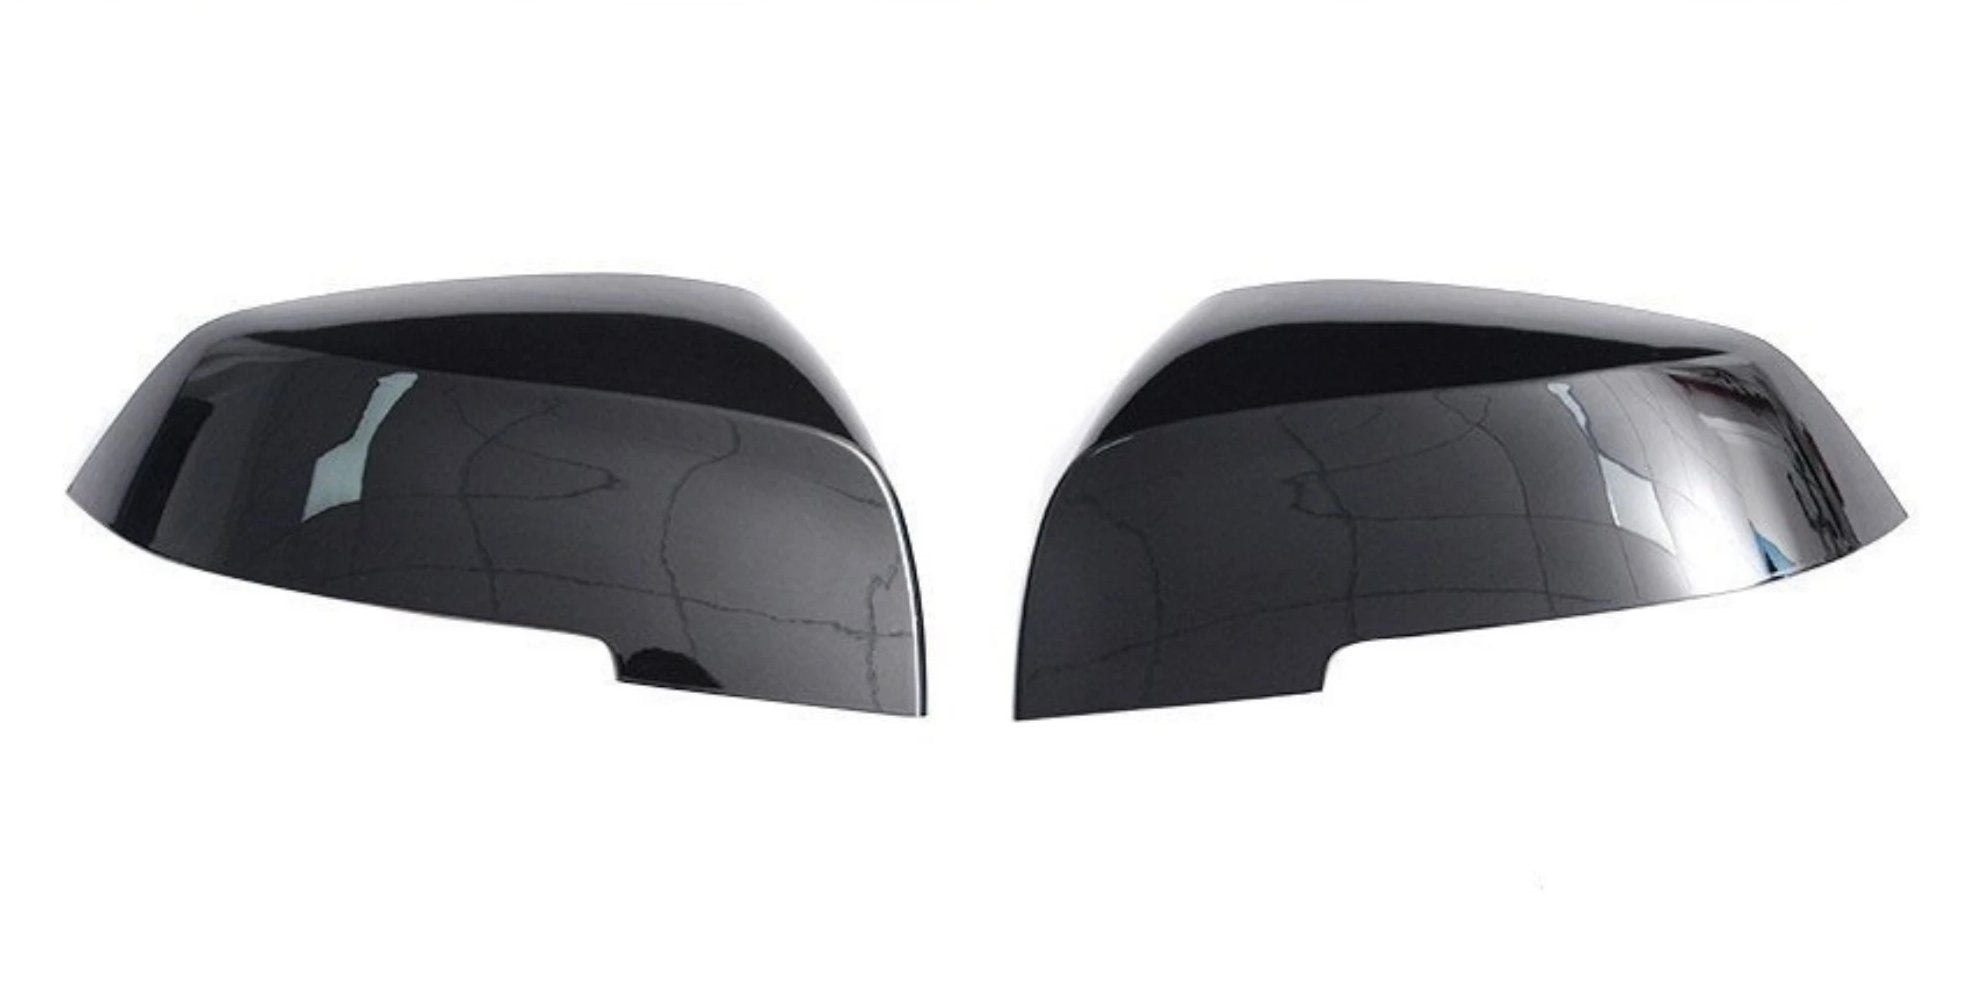 Gloss Black Side Mirror Replacement Caps for BMW 1-Series F20/F21, 2-Series F22/F23, 3-Series F30/F31, 4-Series F32/F33/F34/F36, M2 F87